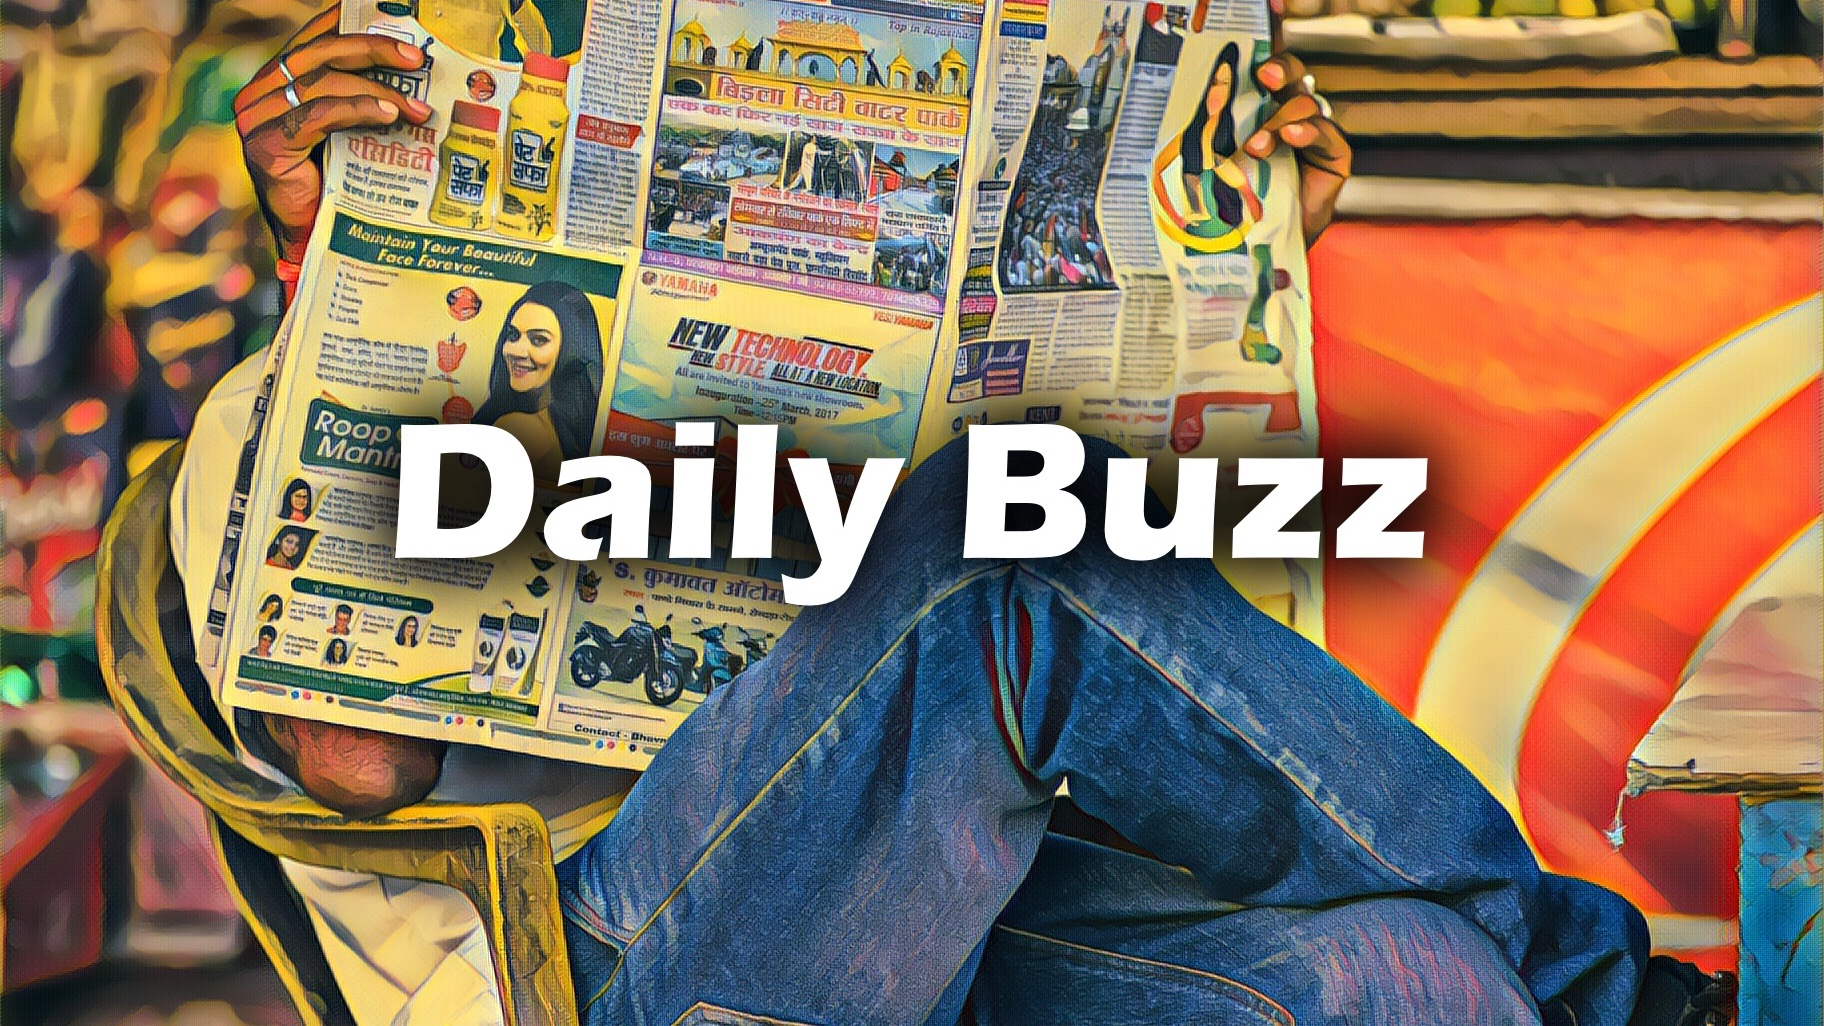 DailyBuzz Friday 3 August 2018